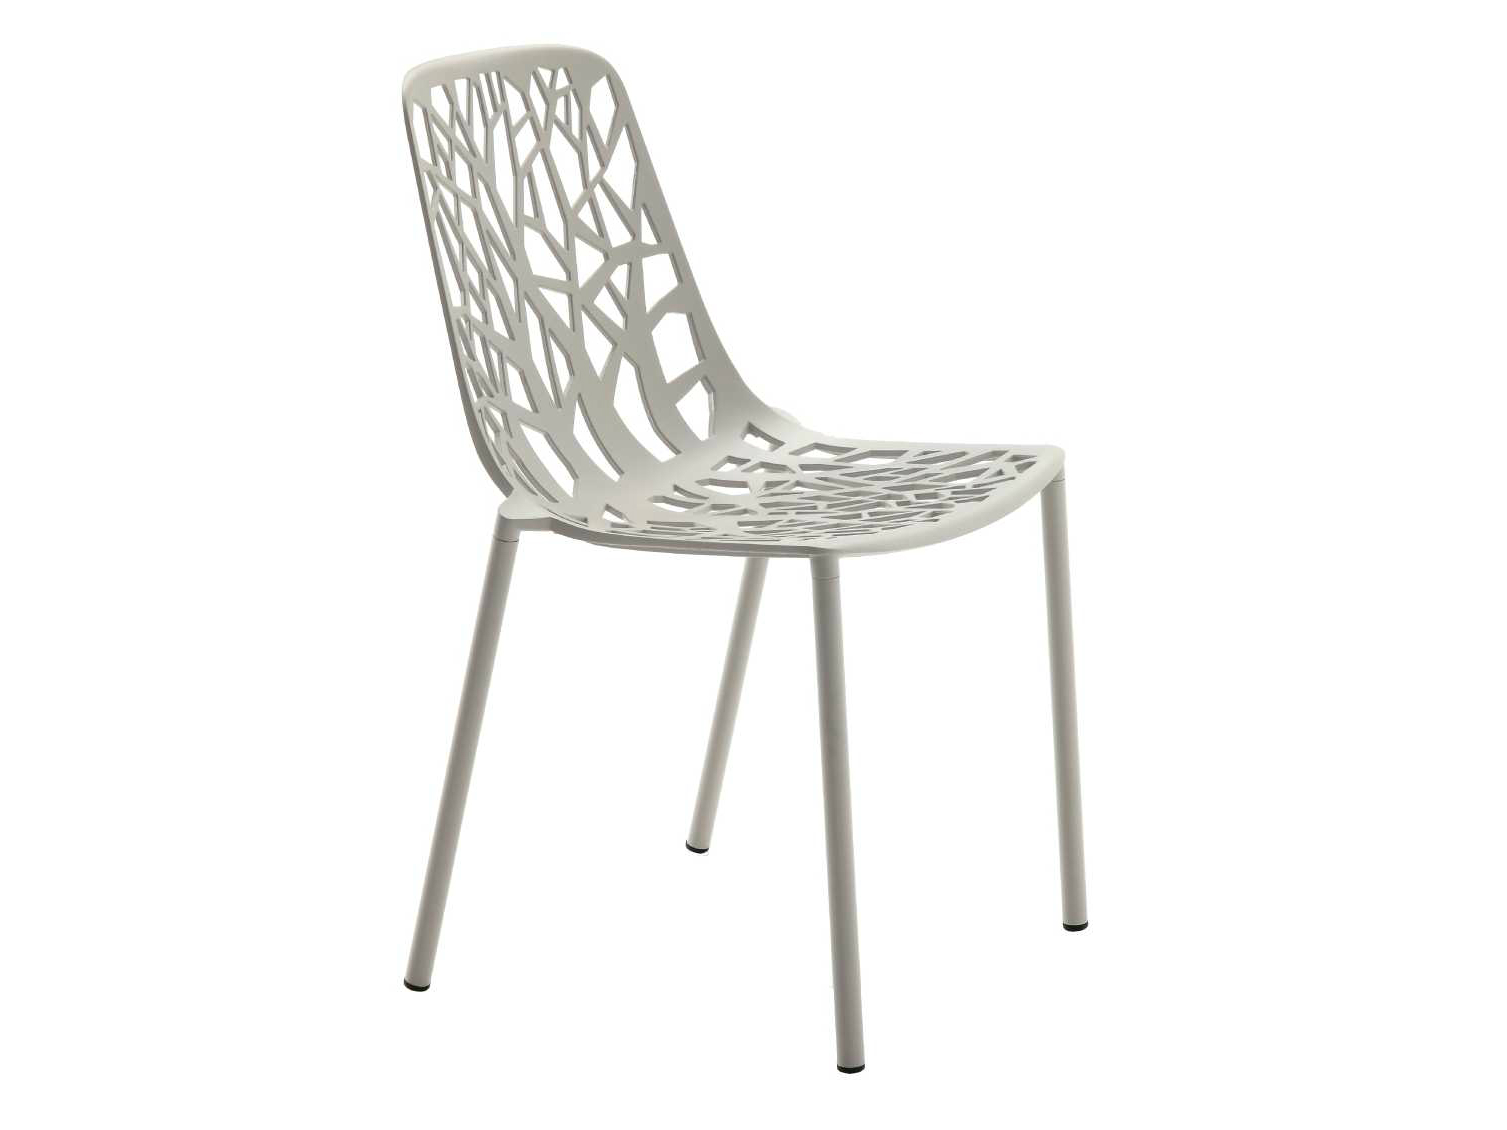 Fast-forest-chair-powdergrey-def